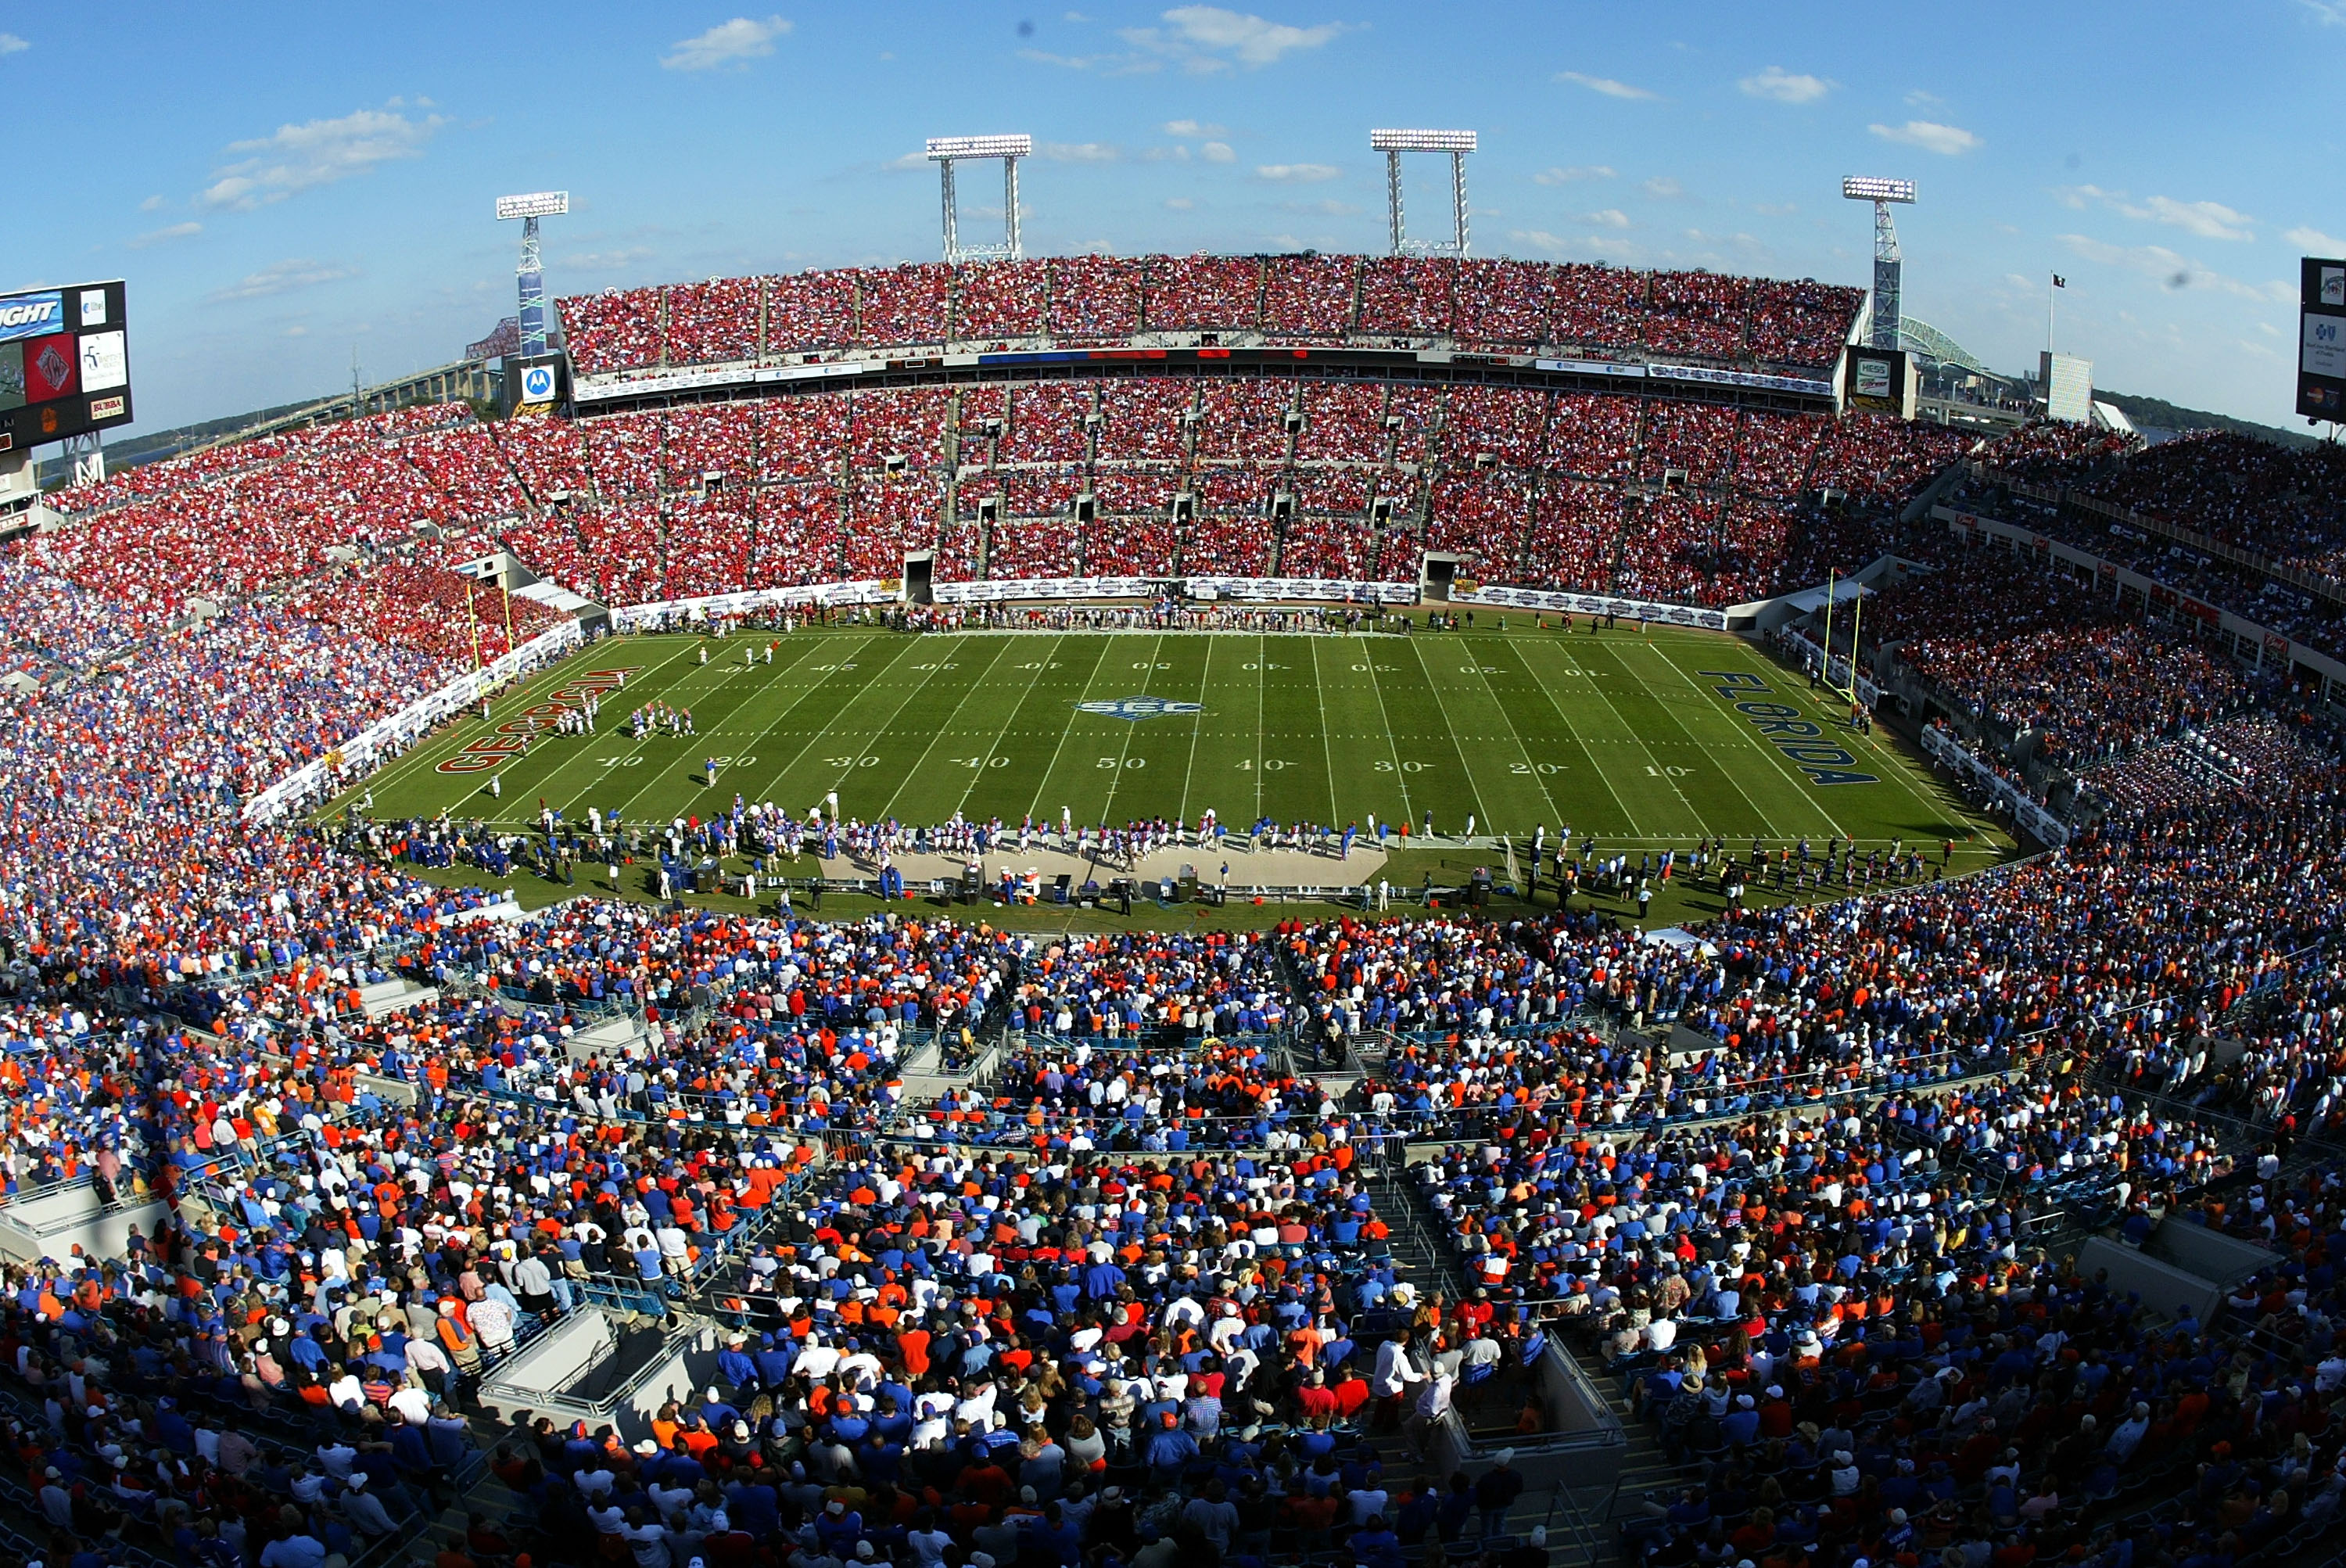 Previously known as Alltel Stadium, the venue was built where the historic Gator Bowl Stadium once stood. The gridiron opened in 1995 to house the Jacksonville Jaguars and annually hosts the Gator Bowl college football game.